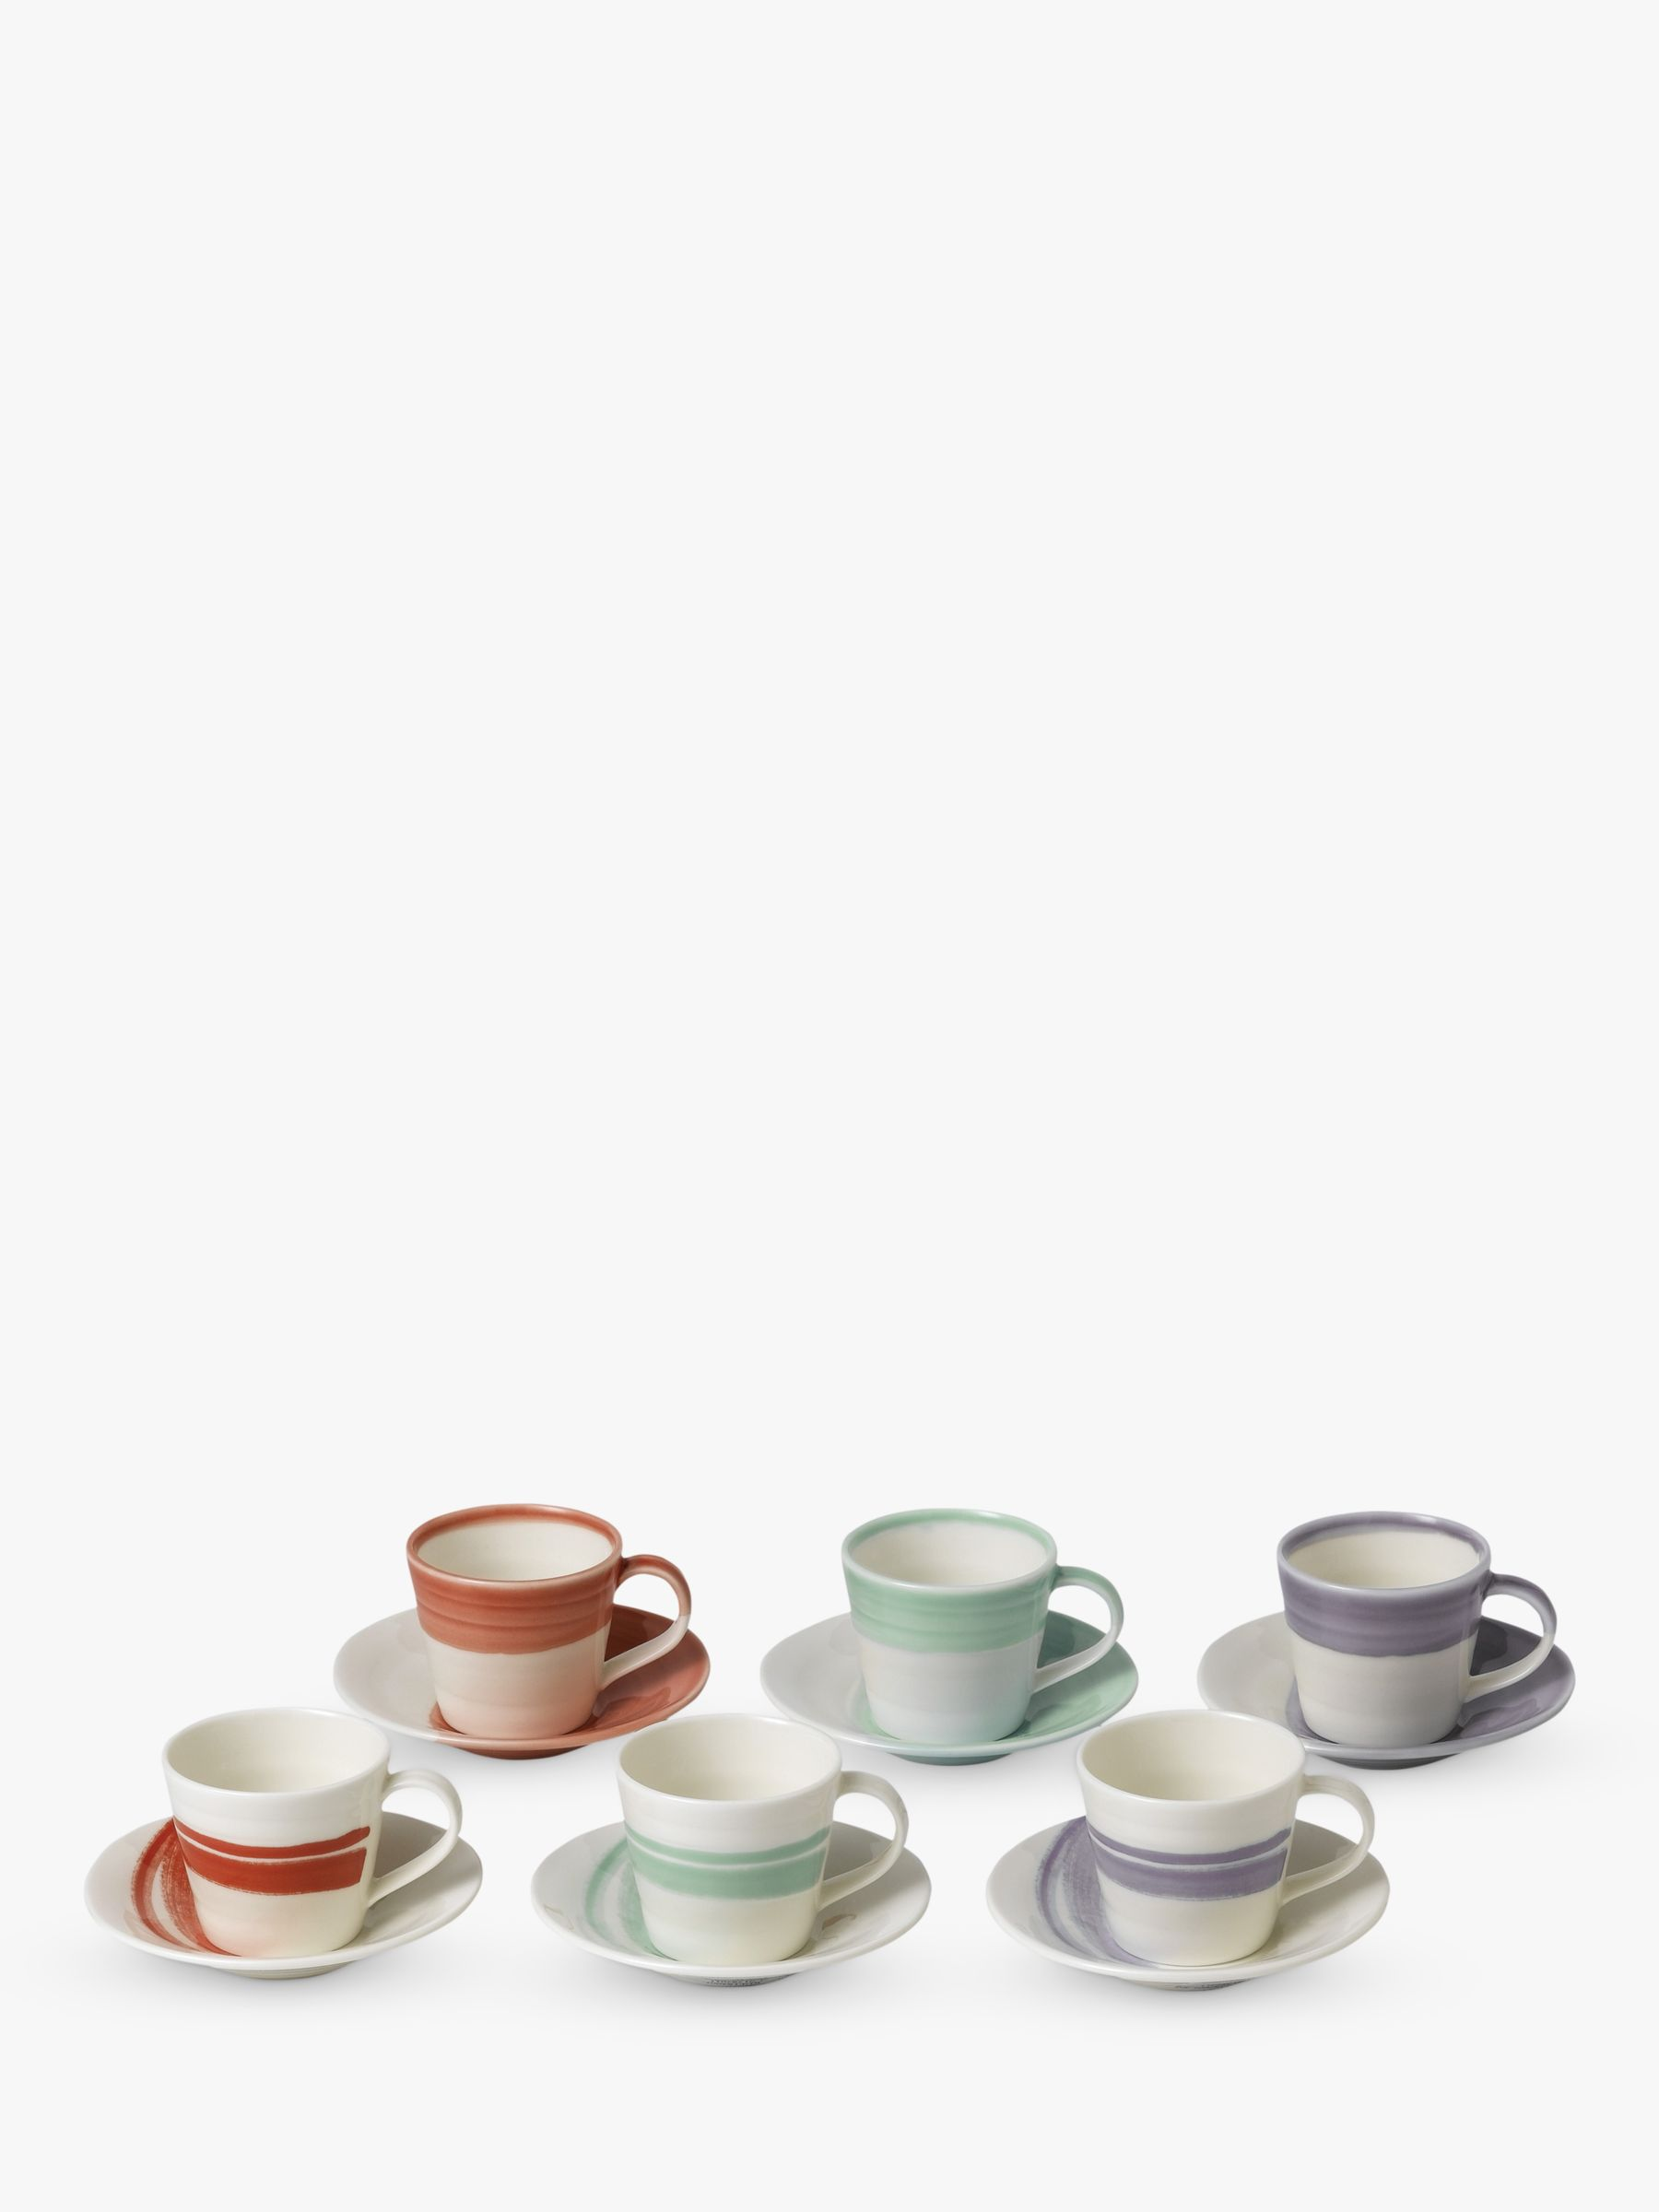 Royal Doulton Royal Doulton 1815 Bold Espresso Cup & Saucer, Set of 6, 90ml, Assorted